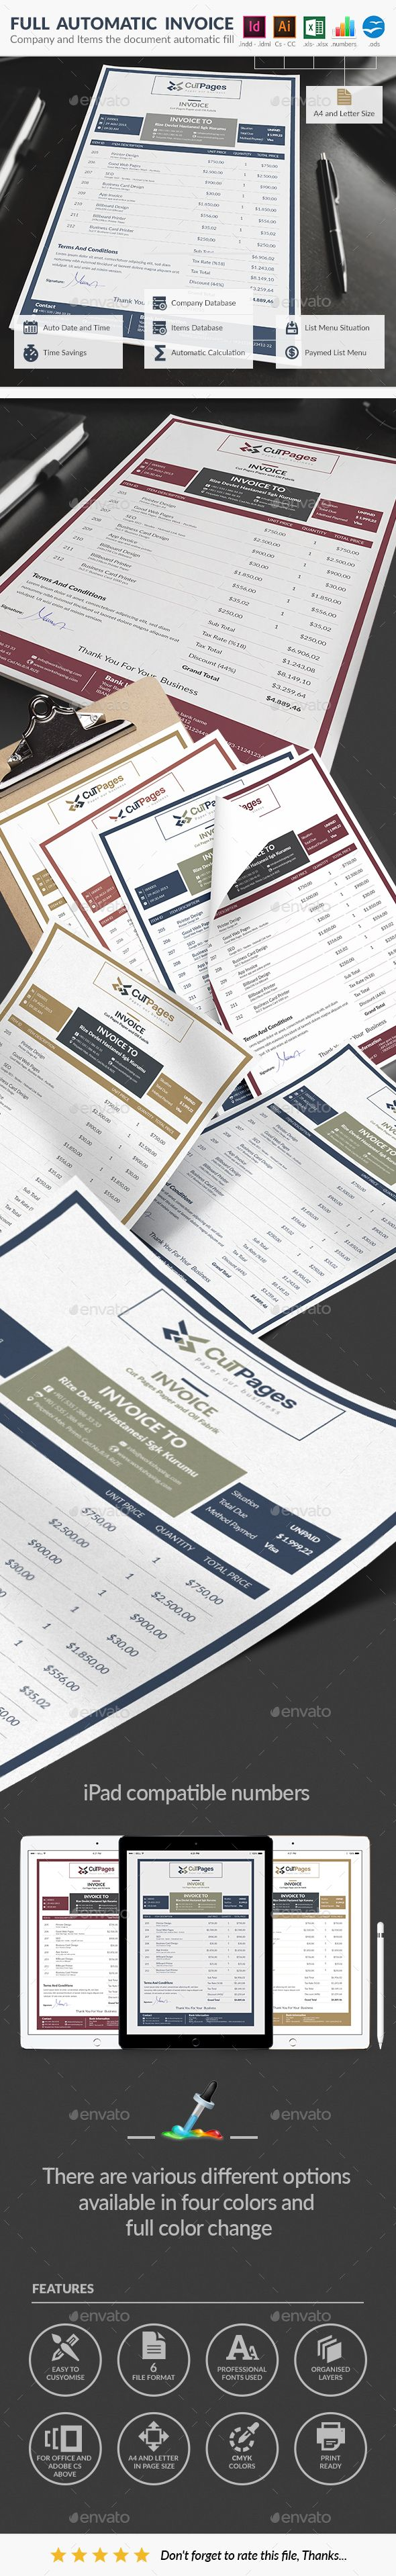 Invoice Template Invoice Example And Proposal Templates - Free online invoice creator template